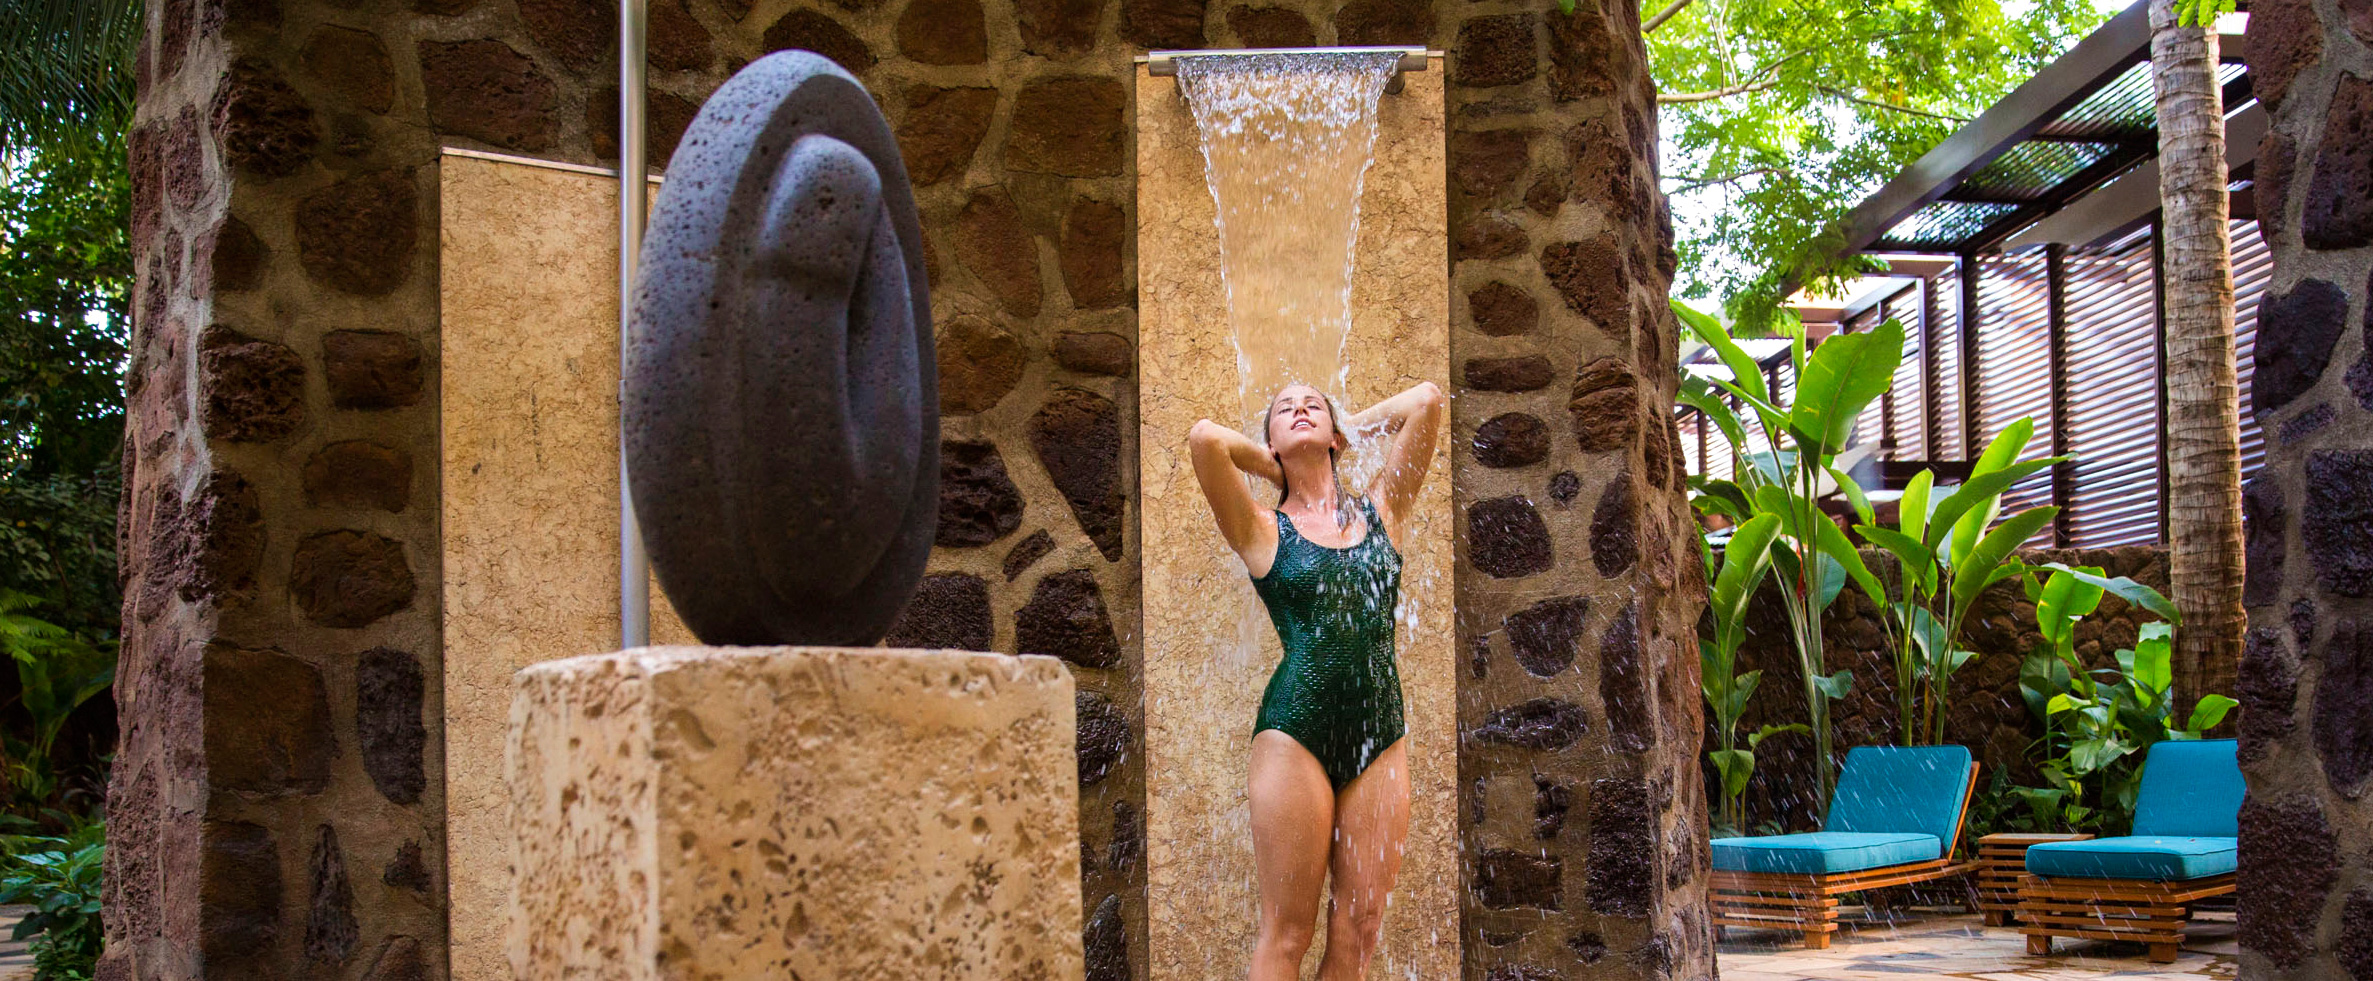 A swimsuited woman bathes under a spray of water at Kula Wai hydrotherapy garden inside Laniwai Spa